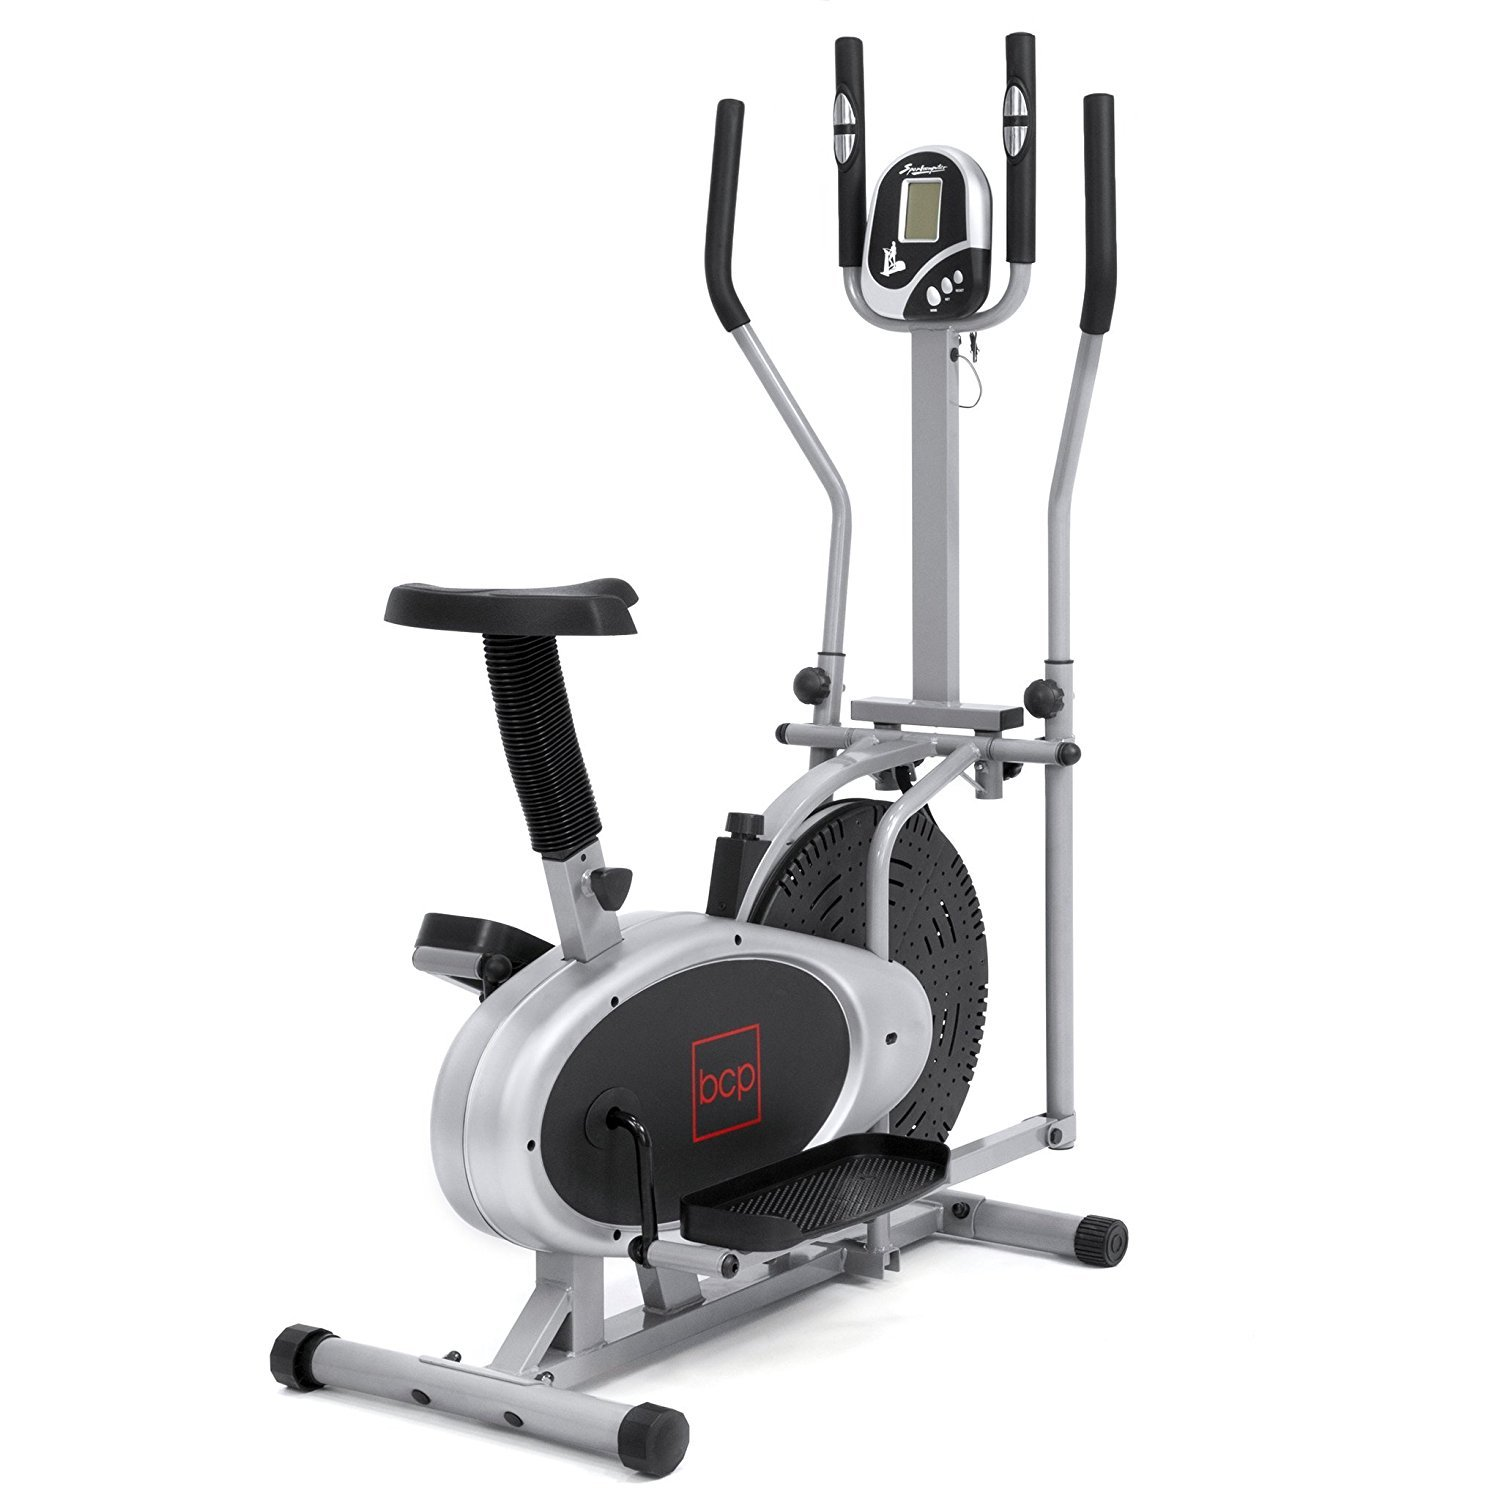 Elliptical Bike 2 IN 1 Cross Trainer Exercise Fitness Machine Upgraded Model by Best Choice Products